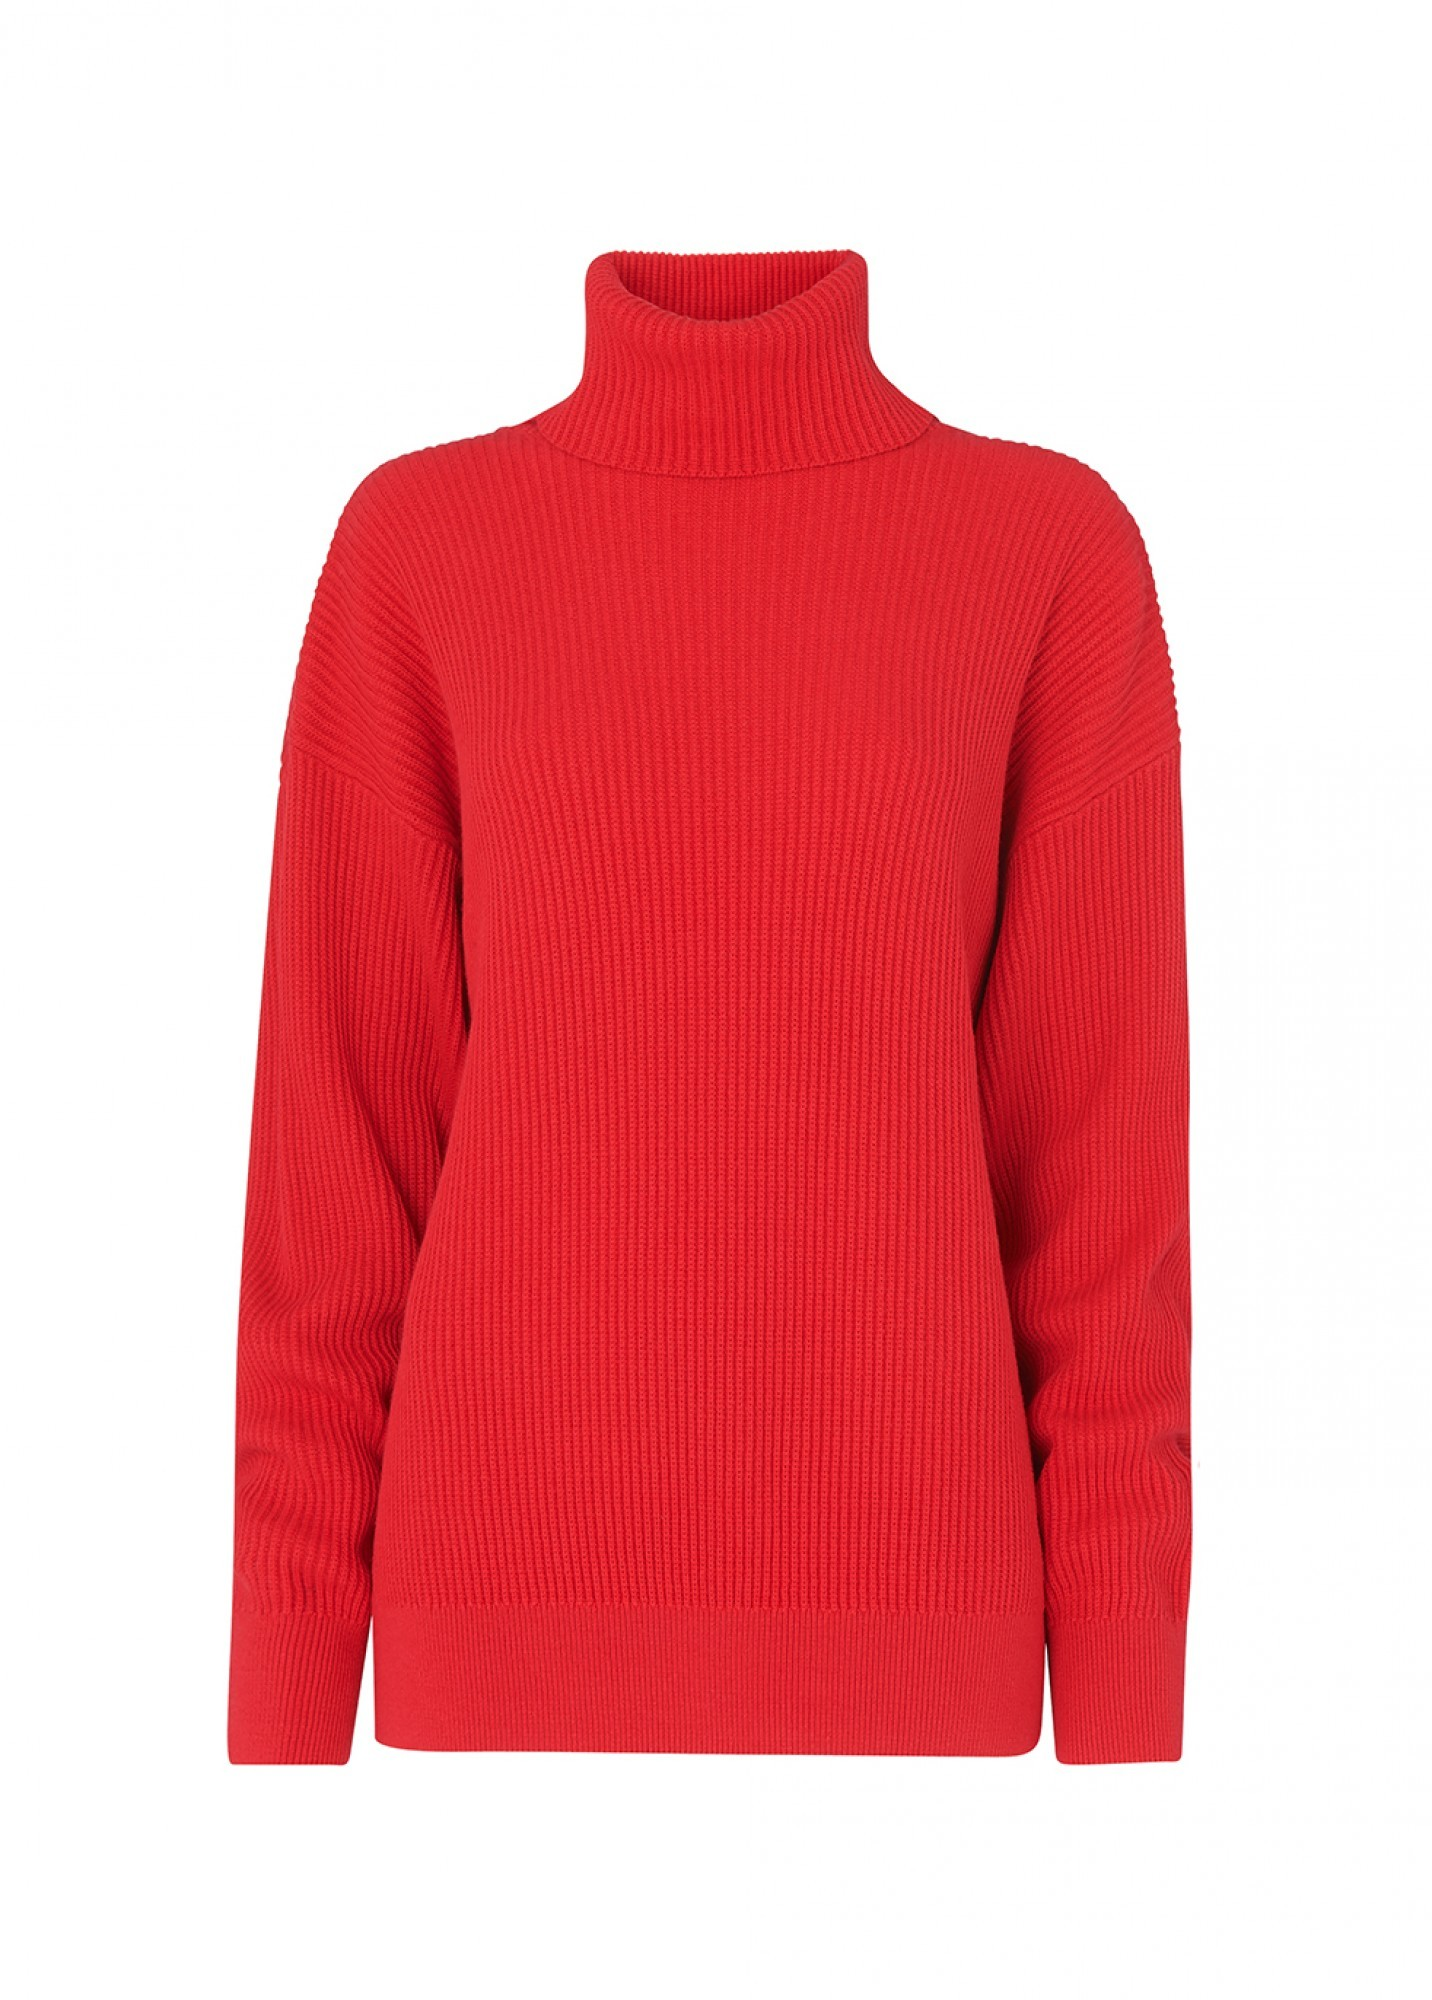 KITRI Mabel Cotton And Cashmere-Blend Turtleneck Sweater in Red